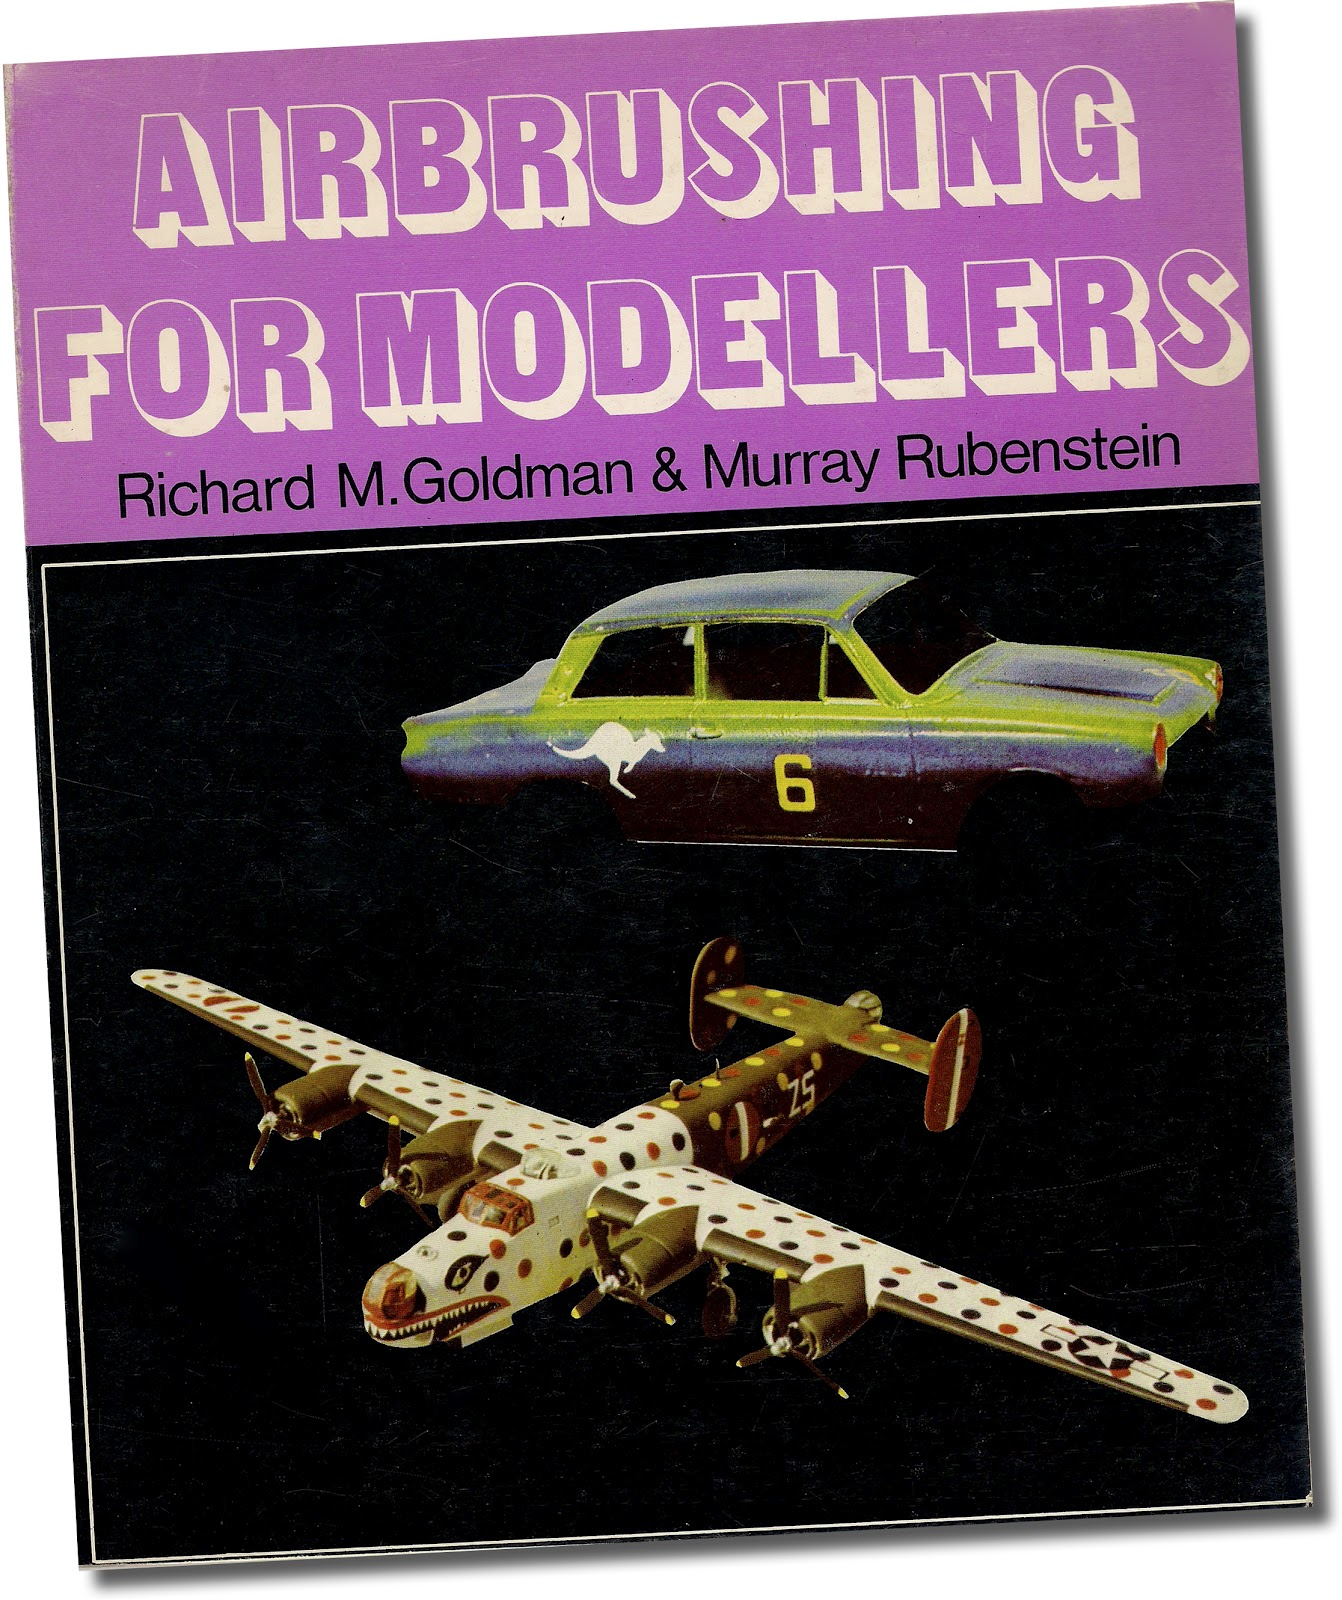 Ralphs Workshop Spraying And Airbrushing Control Your Meccano Models Or Anything Else From Windows Pc I First Got Involved With Way Back In The Dim Distant Past When Was Editing Rewriting A Book For English Market